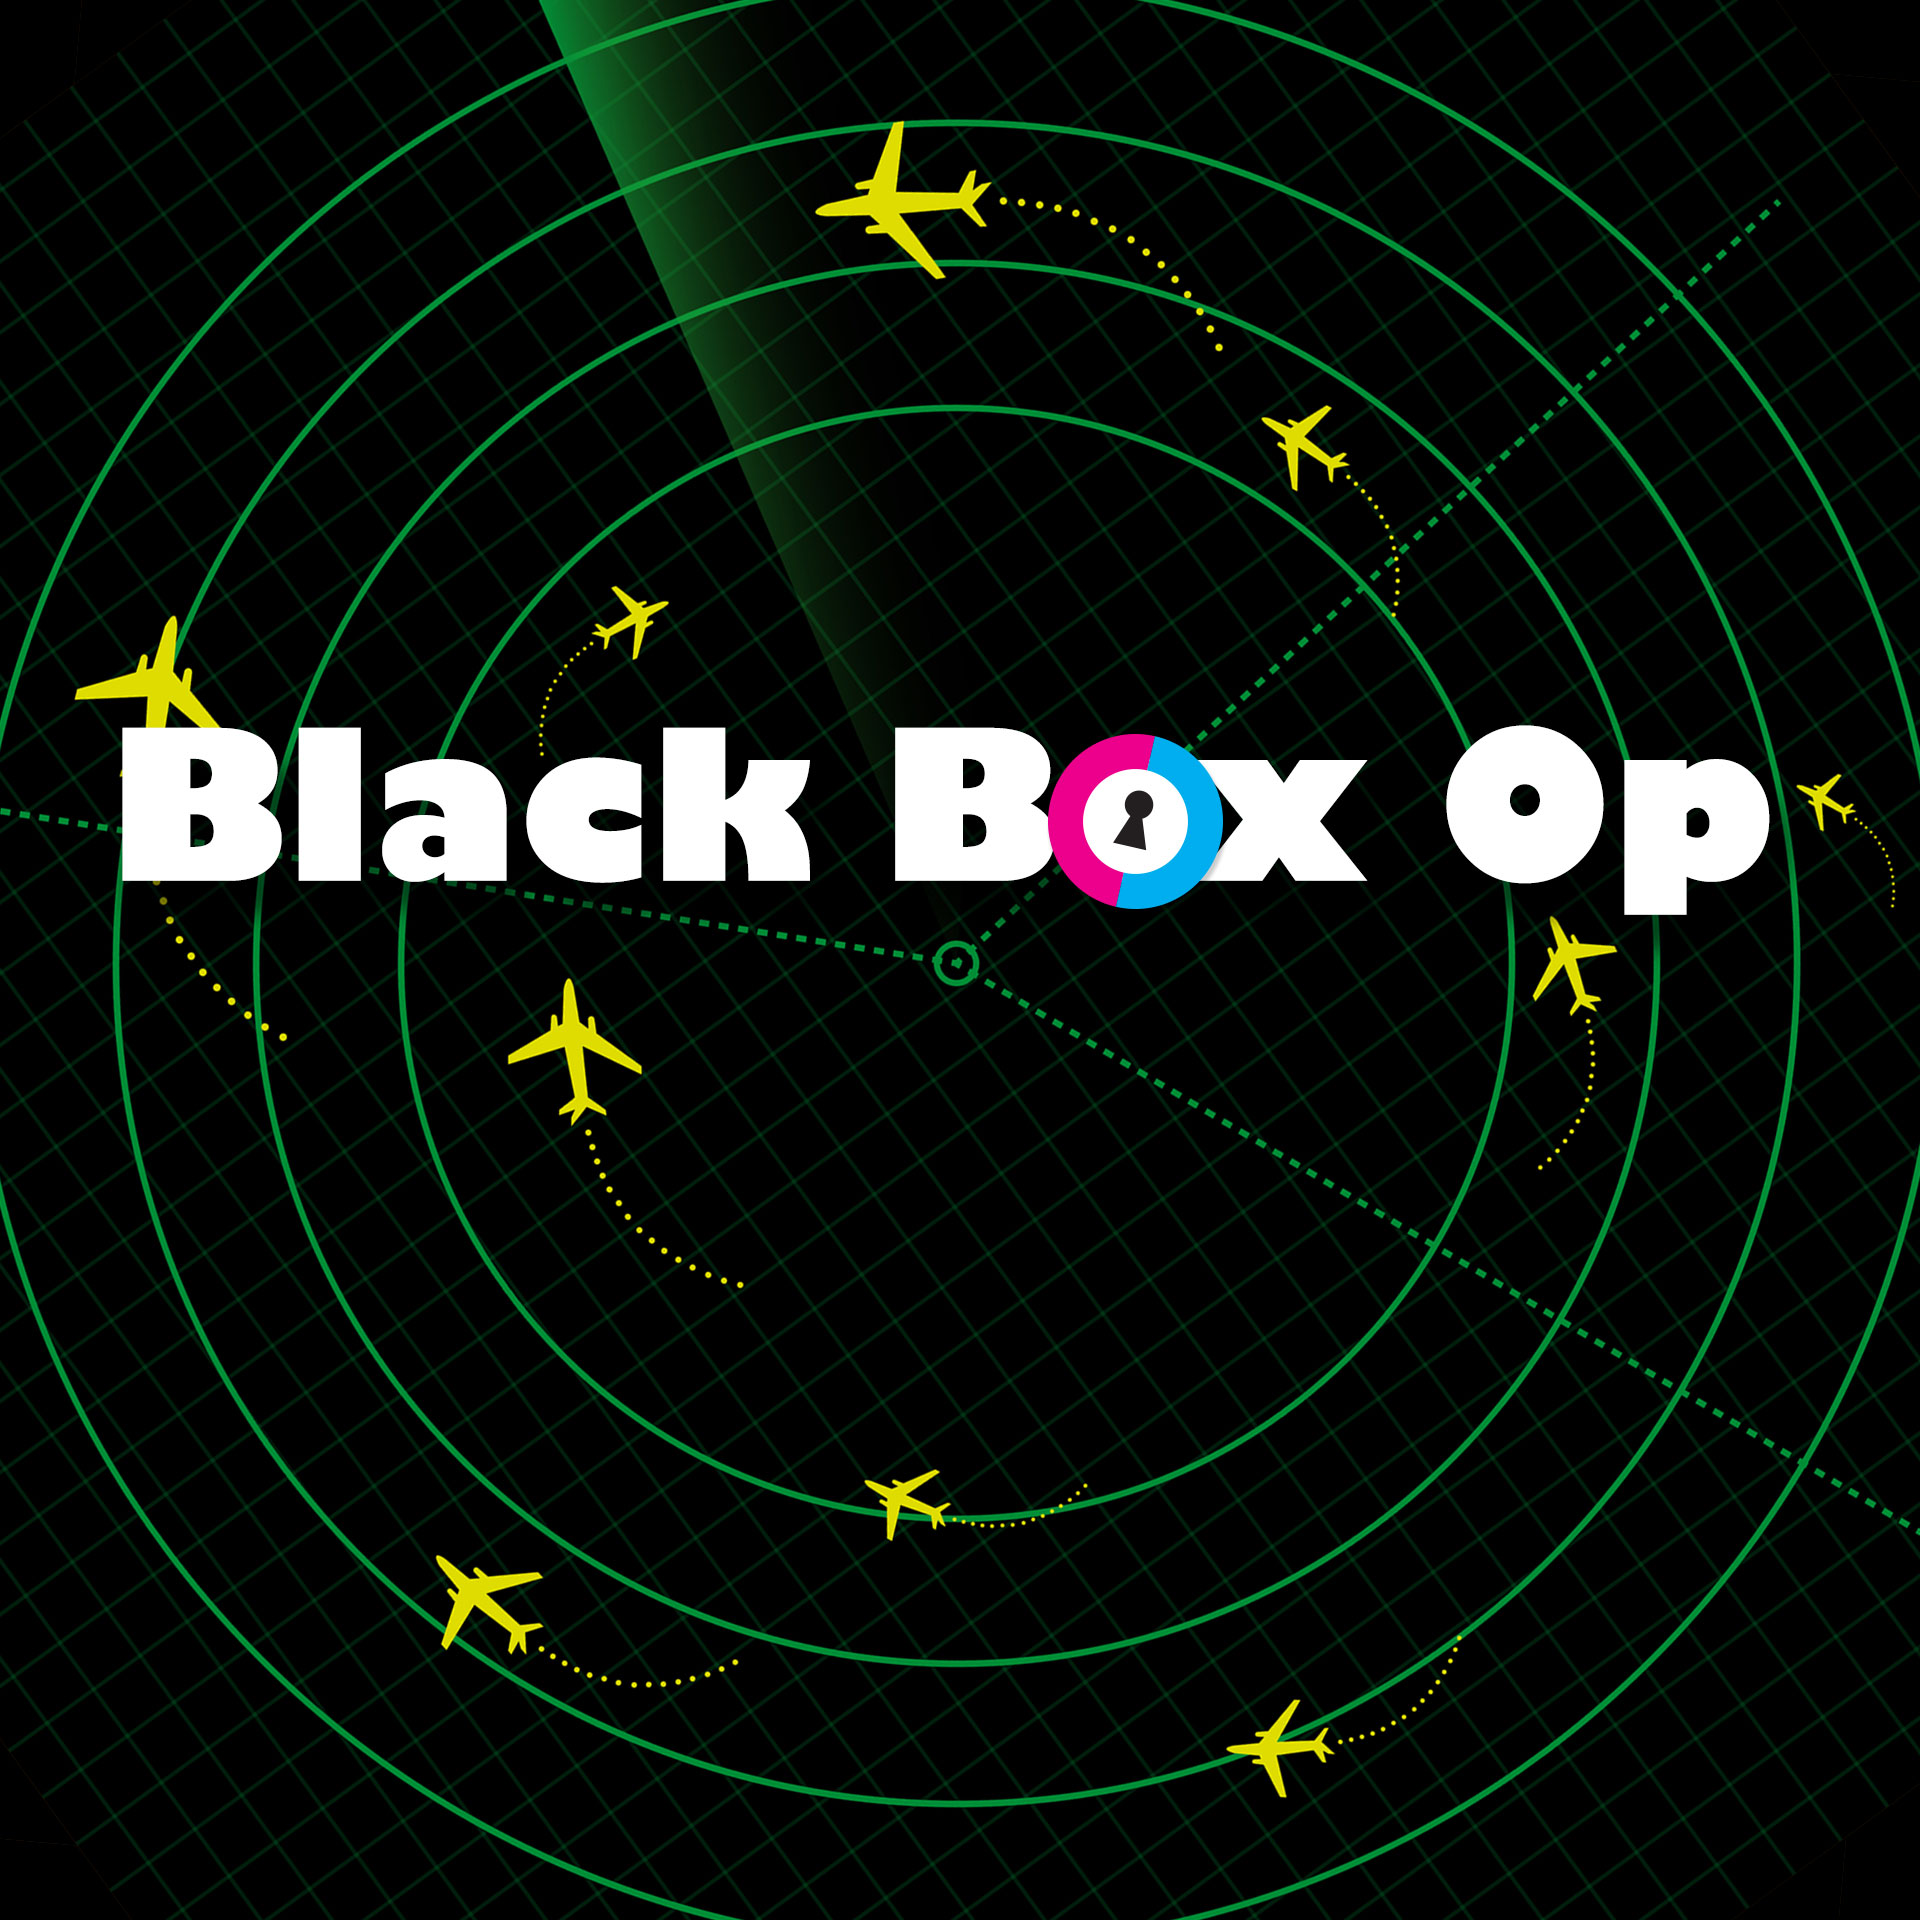 Black Box Op Mobile Mission Escape Game